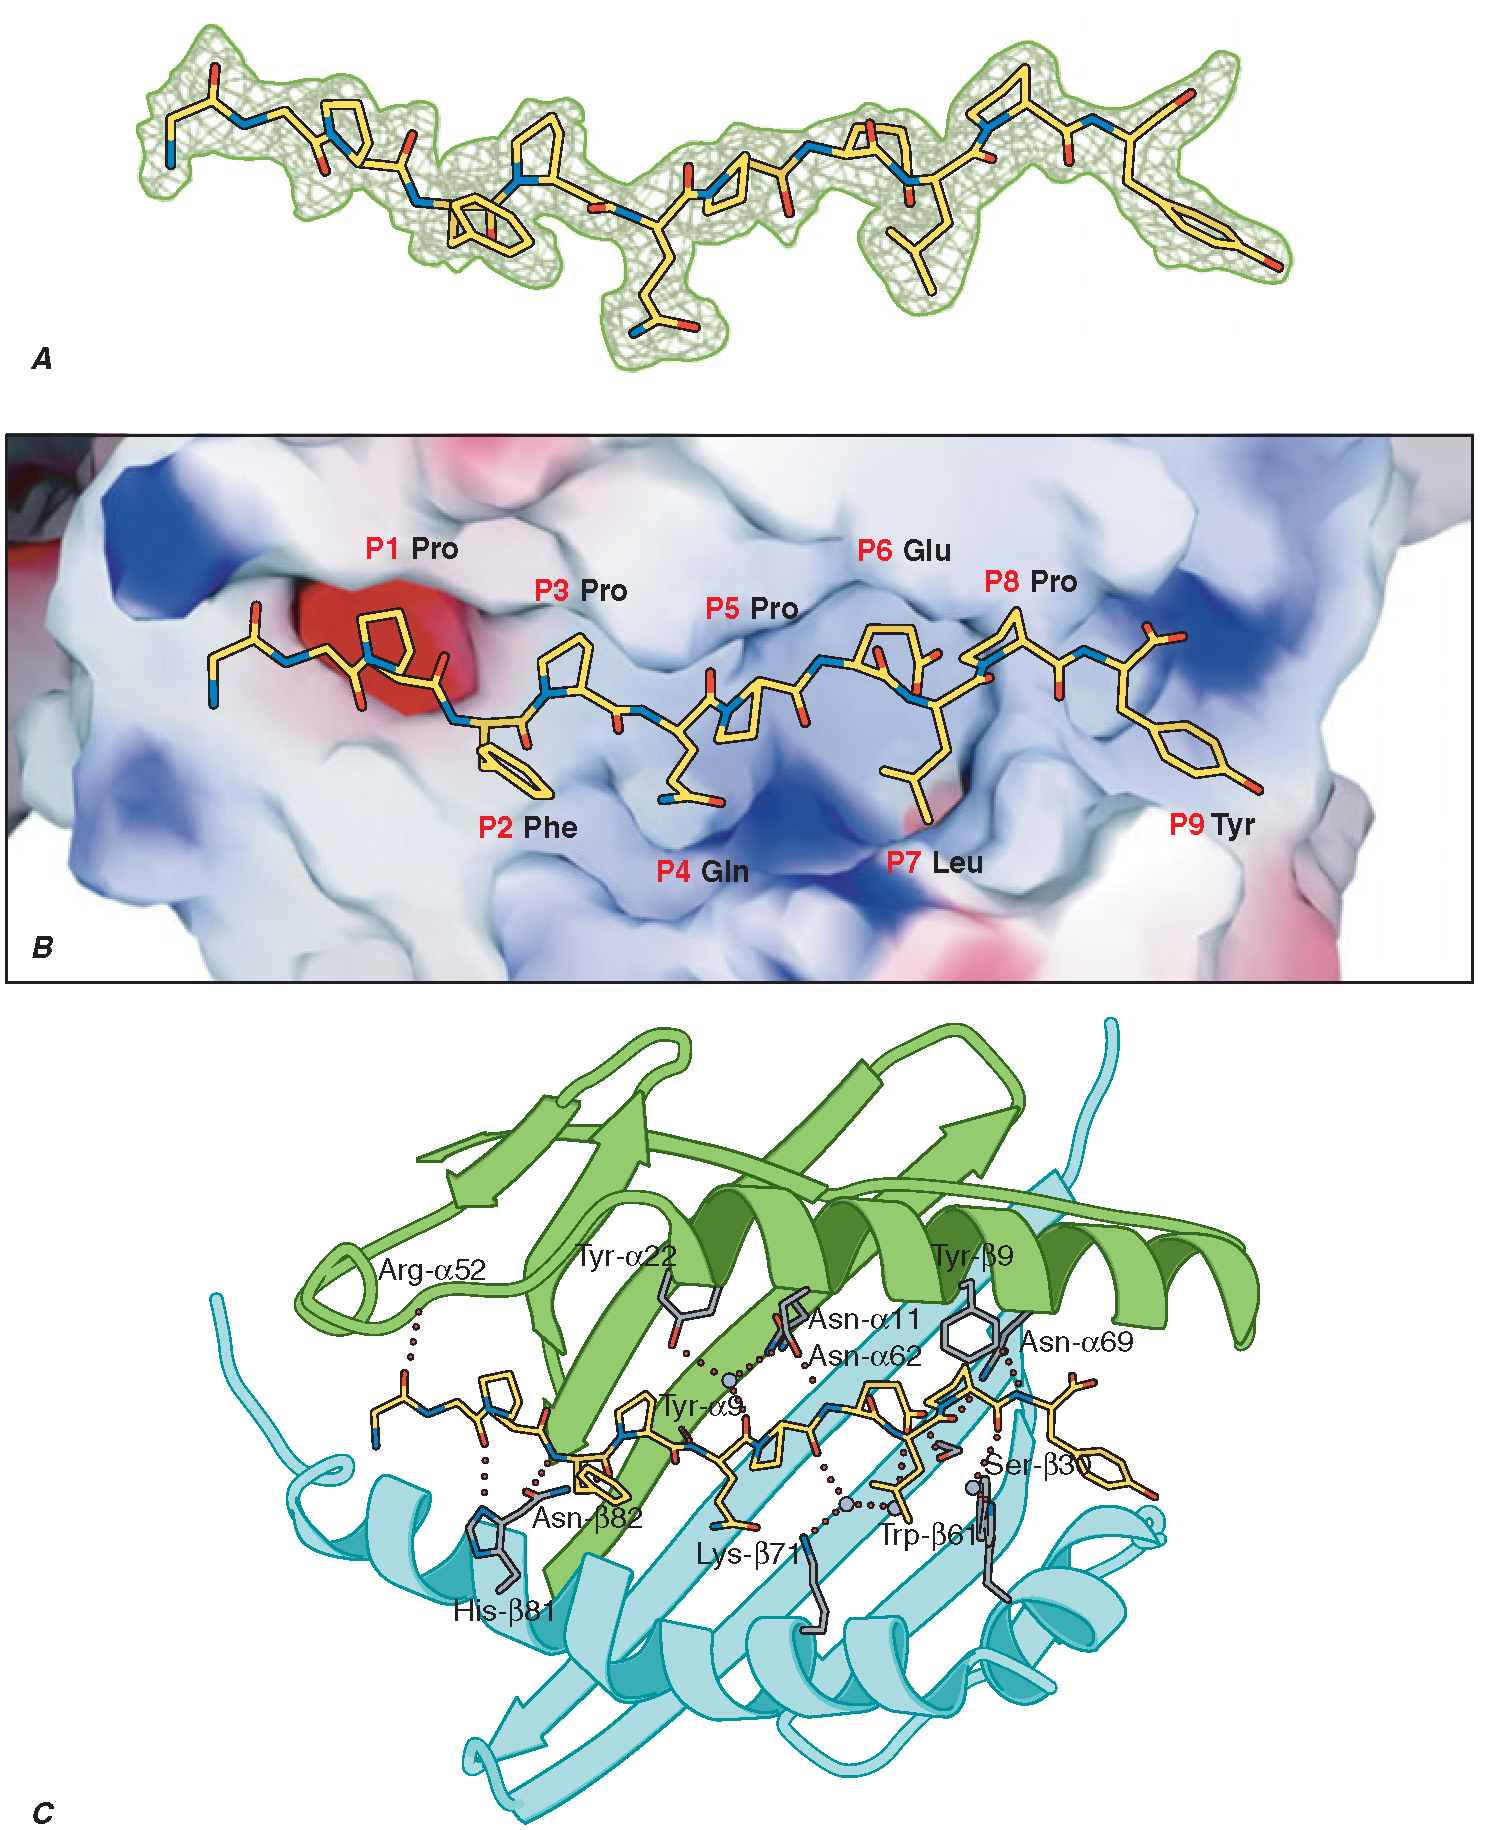 Specific intermolecular interactions determine peptide binding to MHC class II molecules. A short peptide sequence derived from alpha-gliadin (A) is accommodated within the MHC class II binding groove by specific interactions between peptide side chains (the P1-P9 residues illustrated in B) and corresponding pockets in the MHC class II structure. The latter are determined by the genetic polymorphisms of the MHC gene, in this case encoding an HLA-DQ2 molecule. C. This shows the extensive hydrogen bond and salt bridge network that tightly constrains the pMHC complex and presents the complex of antigen and restriction element for CD4 T cell recognition.